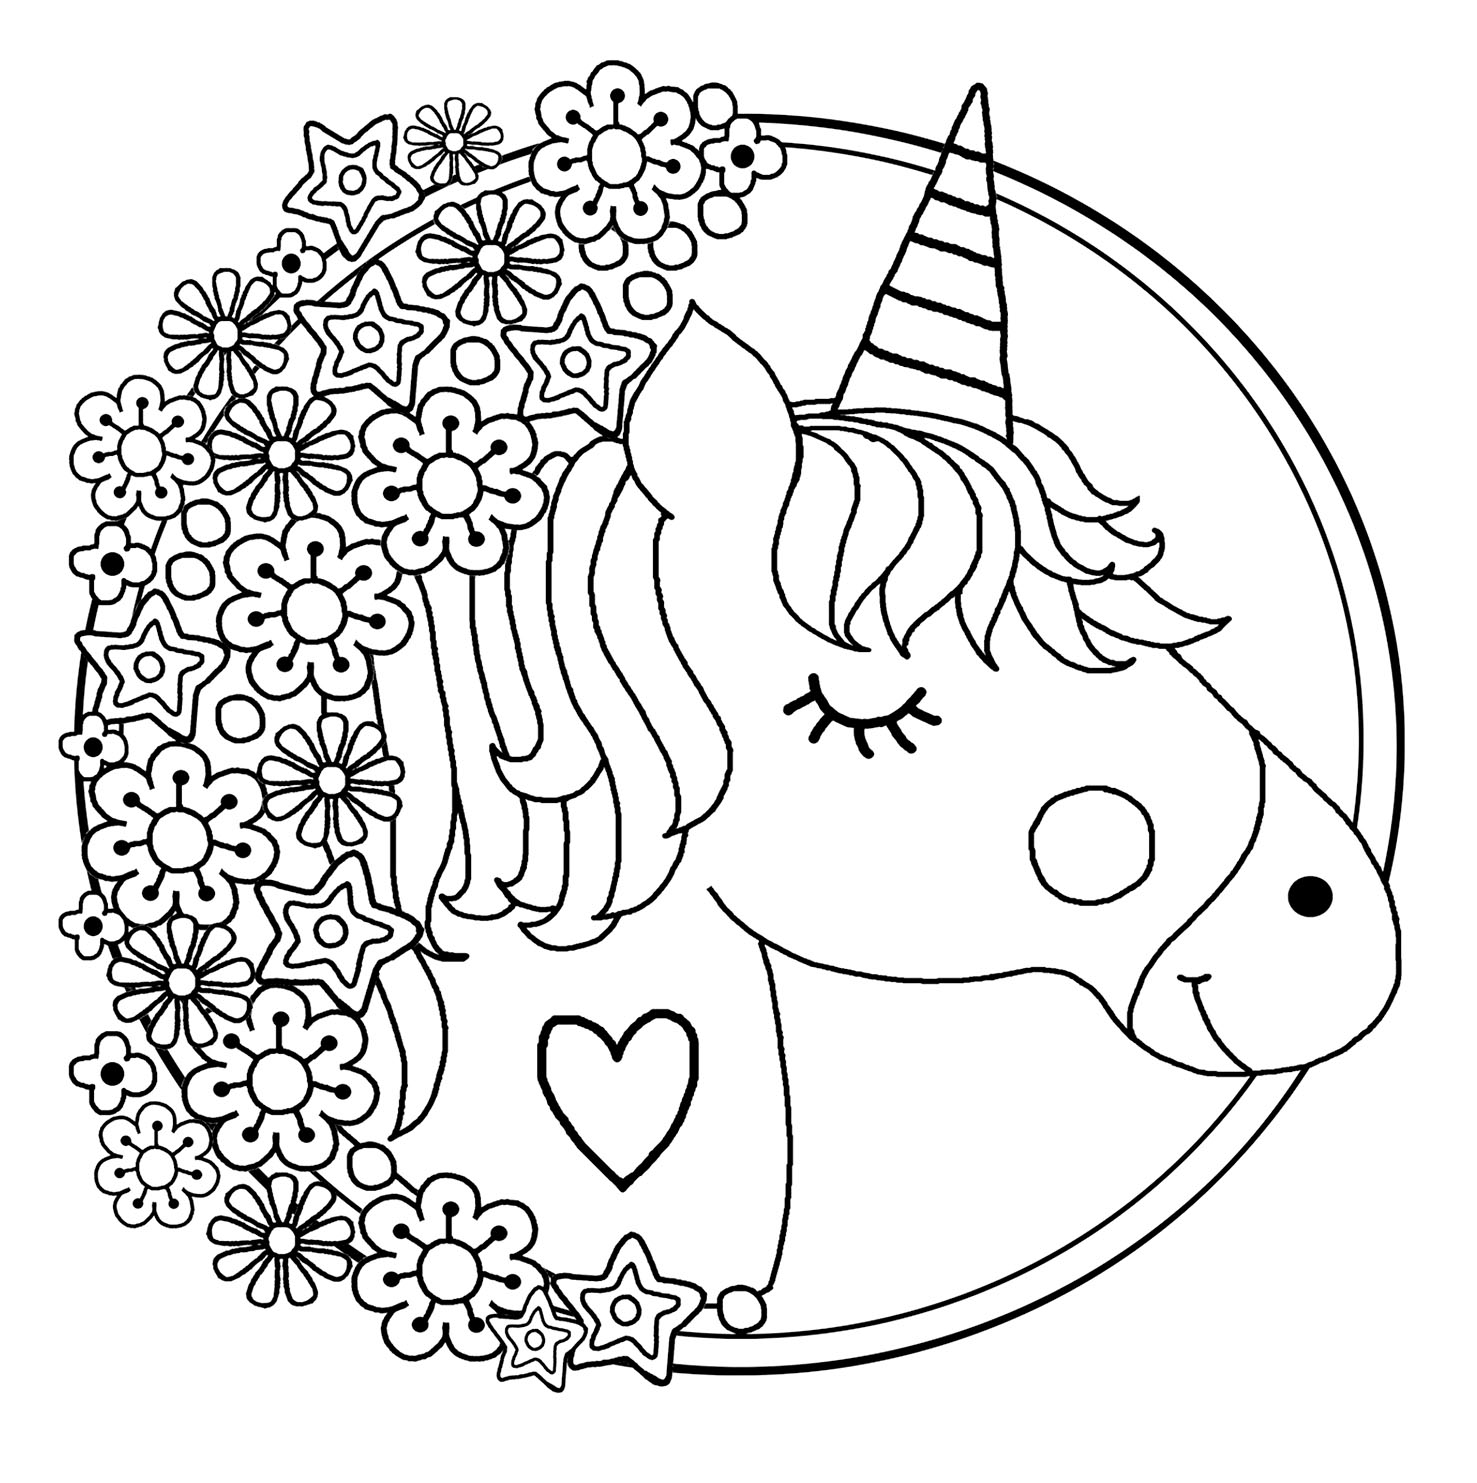 unicorn coloring to print realistic unicorn coloring pages download and print for free to coloring print unicorn